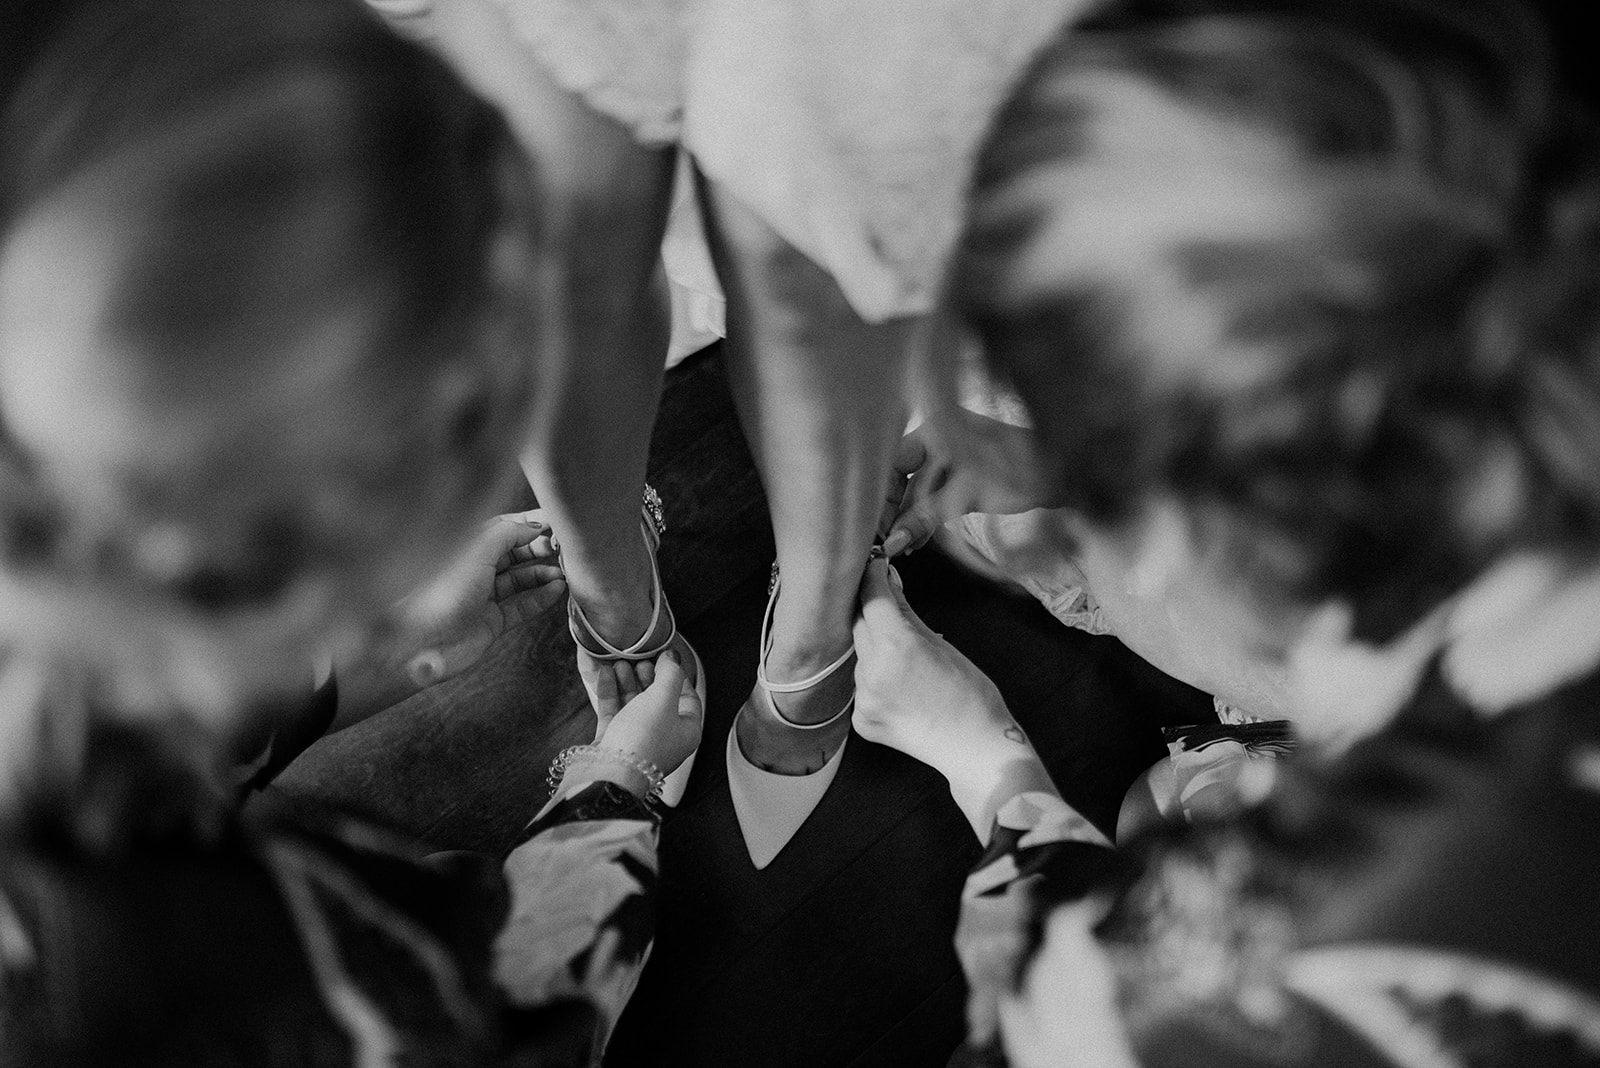 overthevineswisconsinwedding_0320.jpg